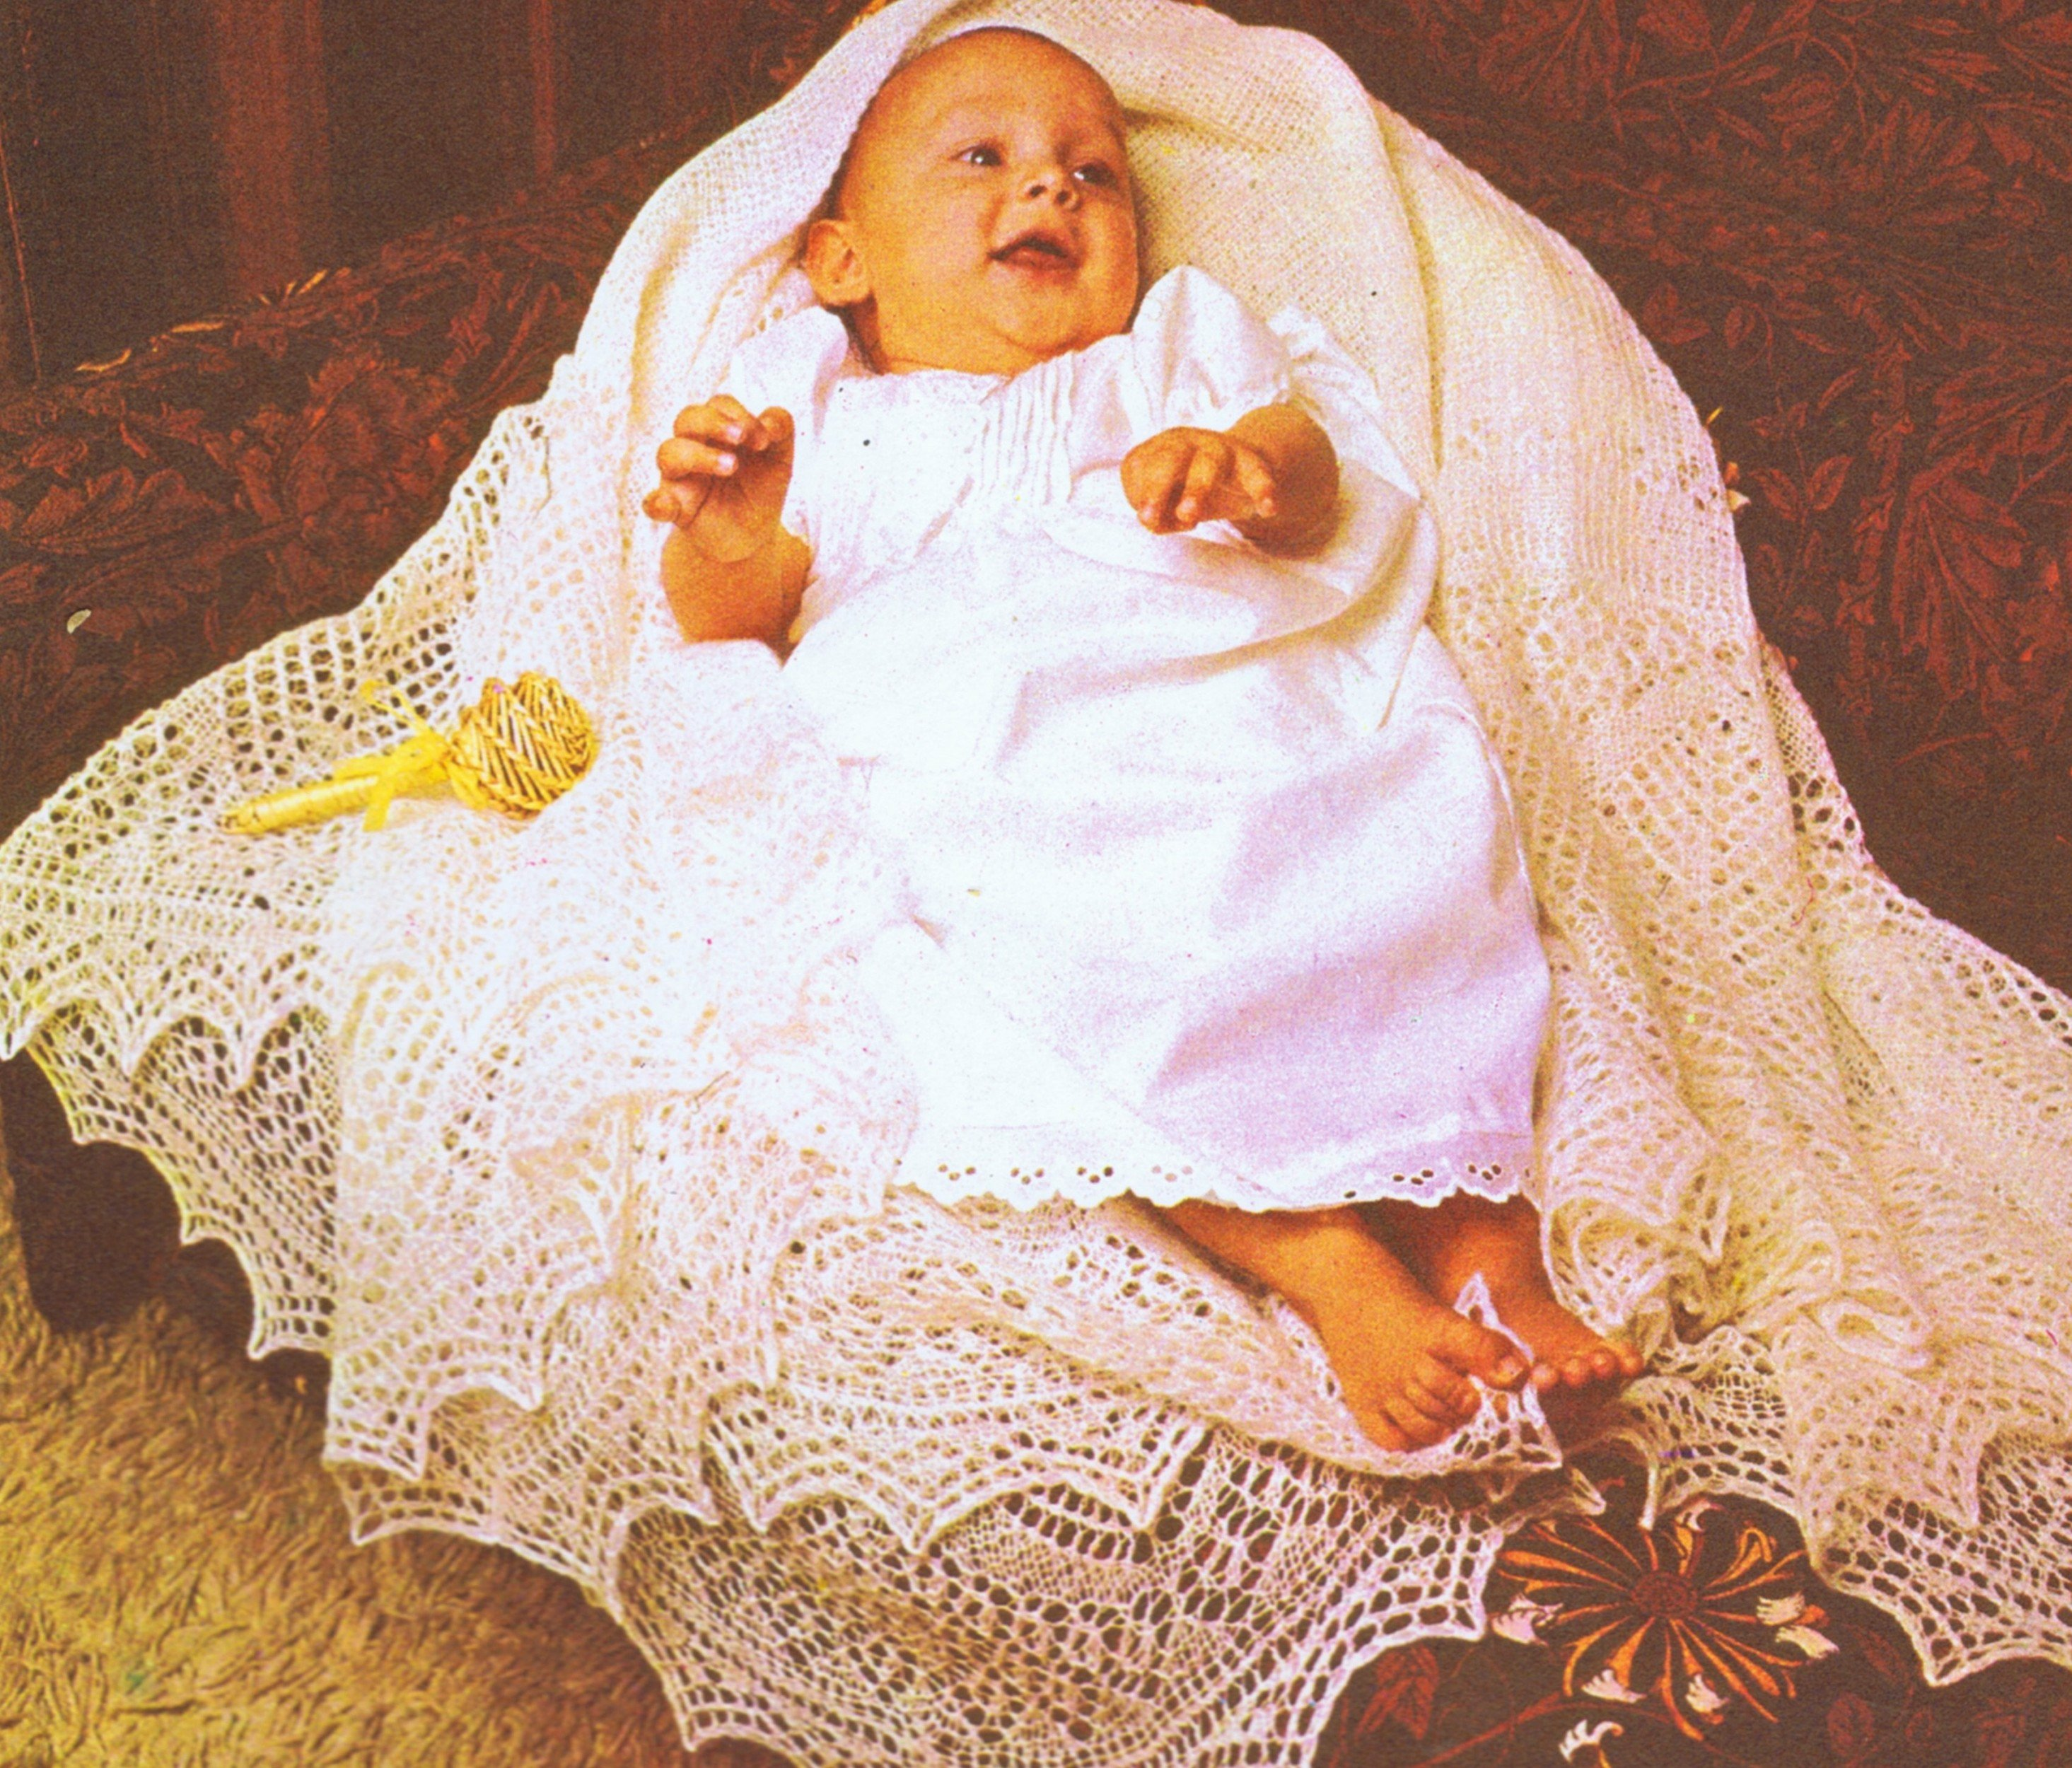 Vintage Knitting Baby Patterns : Vintage Knitting Patterns Babies - Vintage Patterns Dazespast Blog